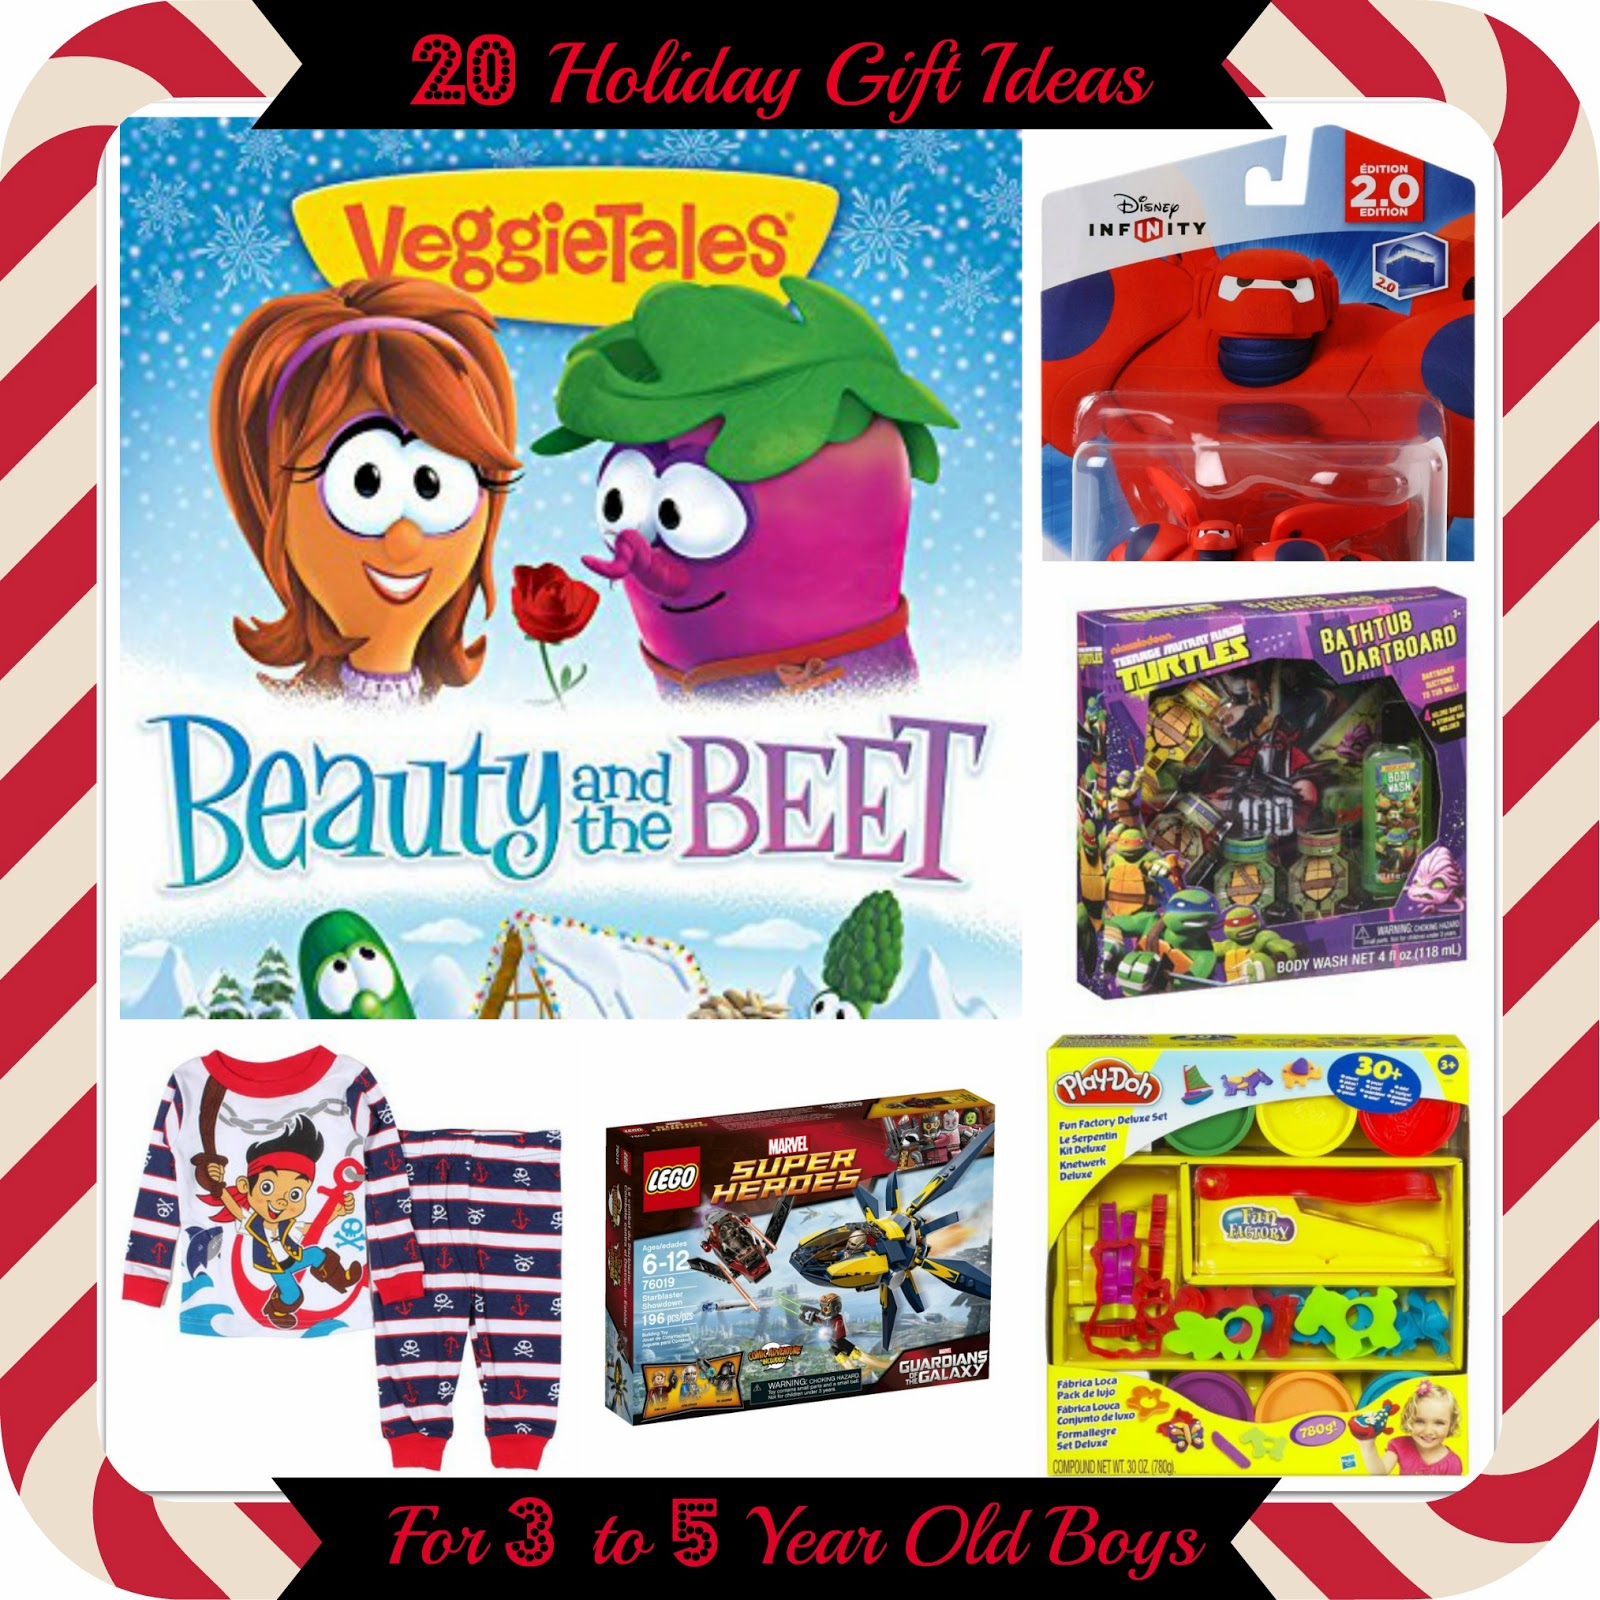 5 Year Old Christmas Gifts: Raising Samuels Life: 20 Holiday Gift Ideas For 3-5 Year